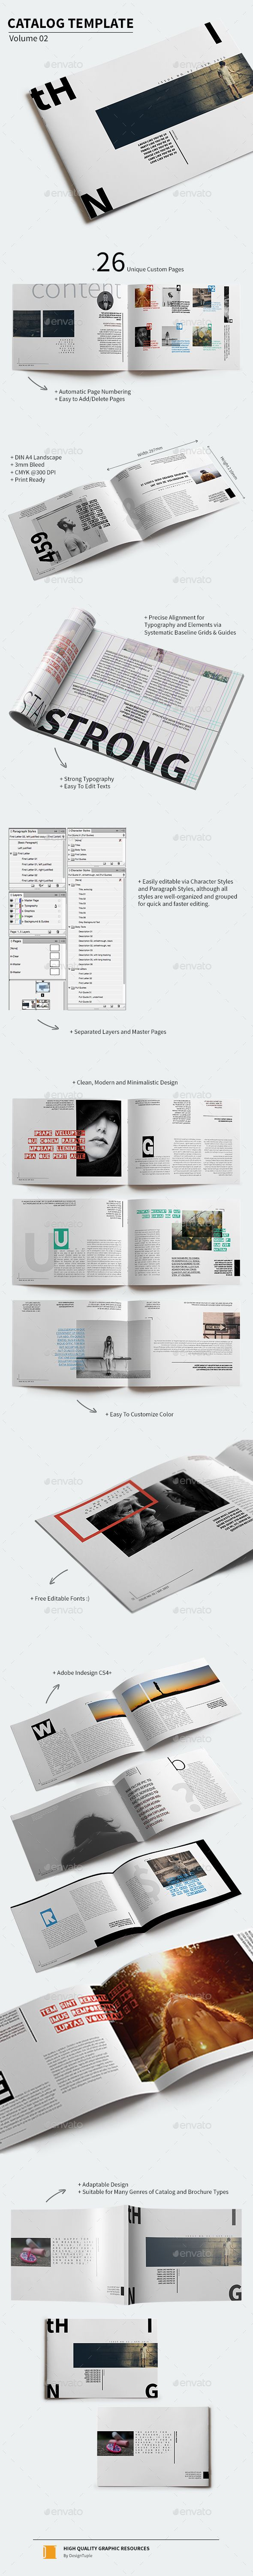 Catalog Brochure Template #design